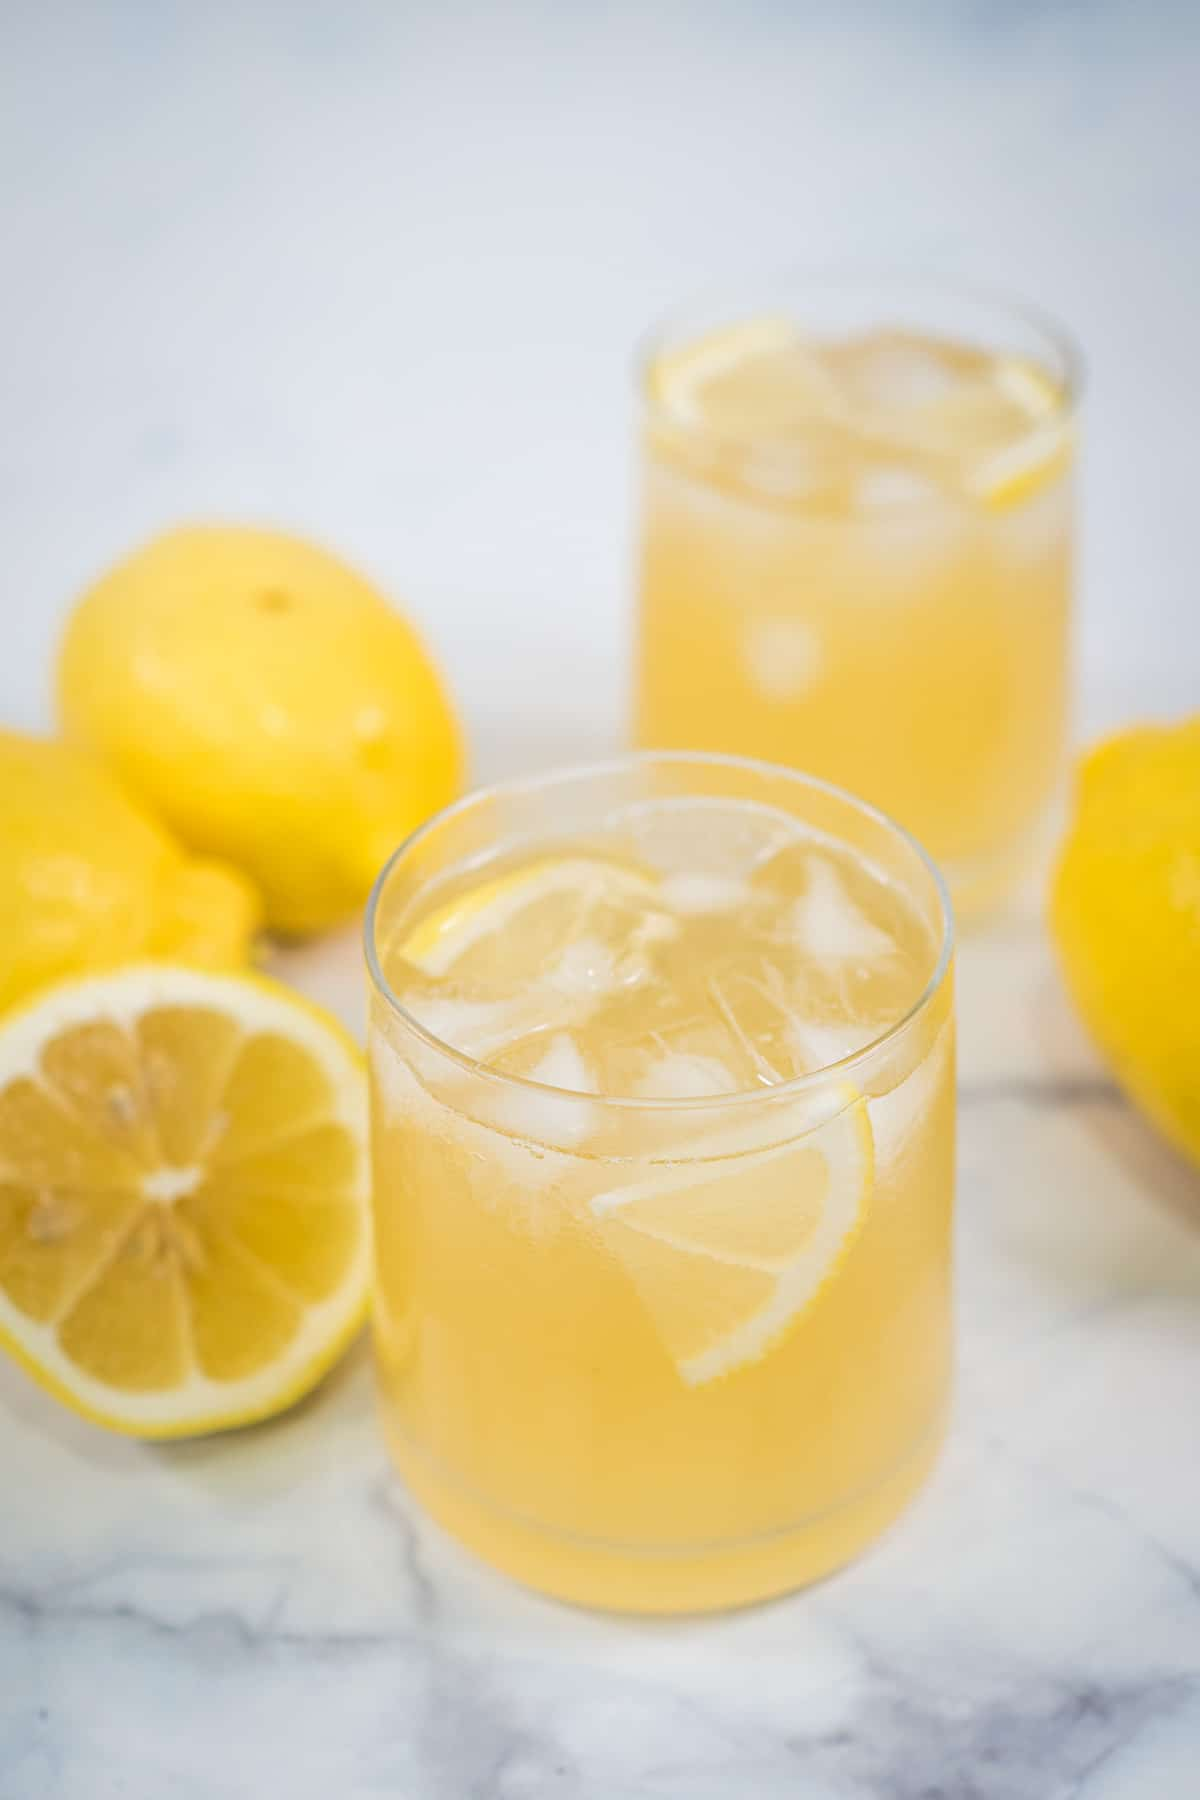 2 glasses of lemonade with ice cubes and lemon slices